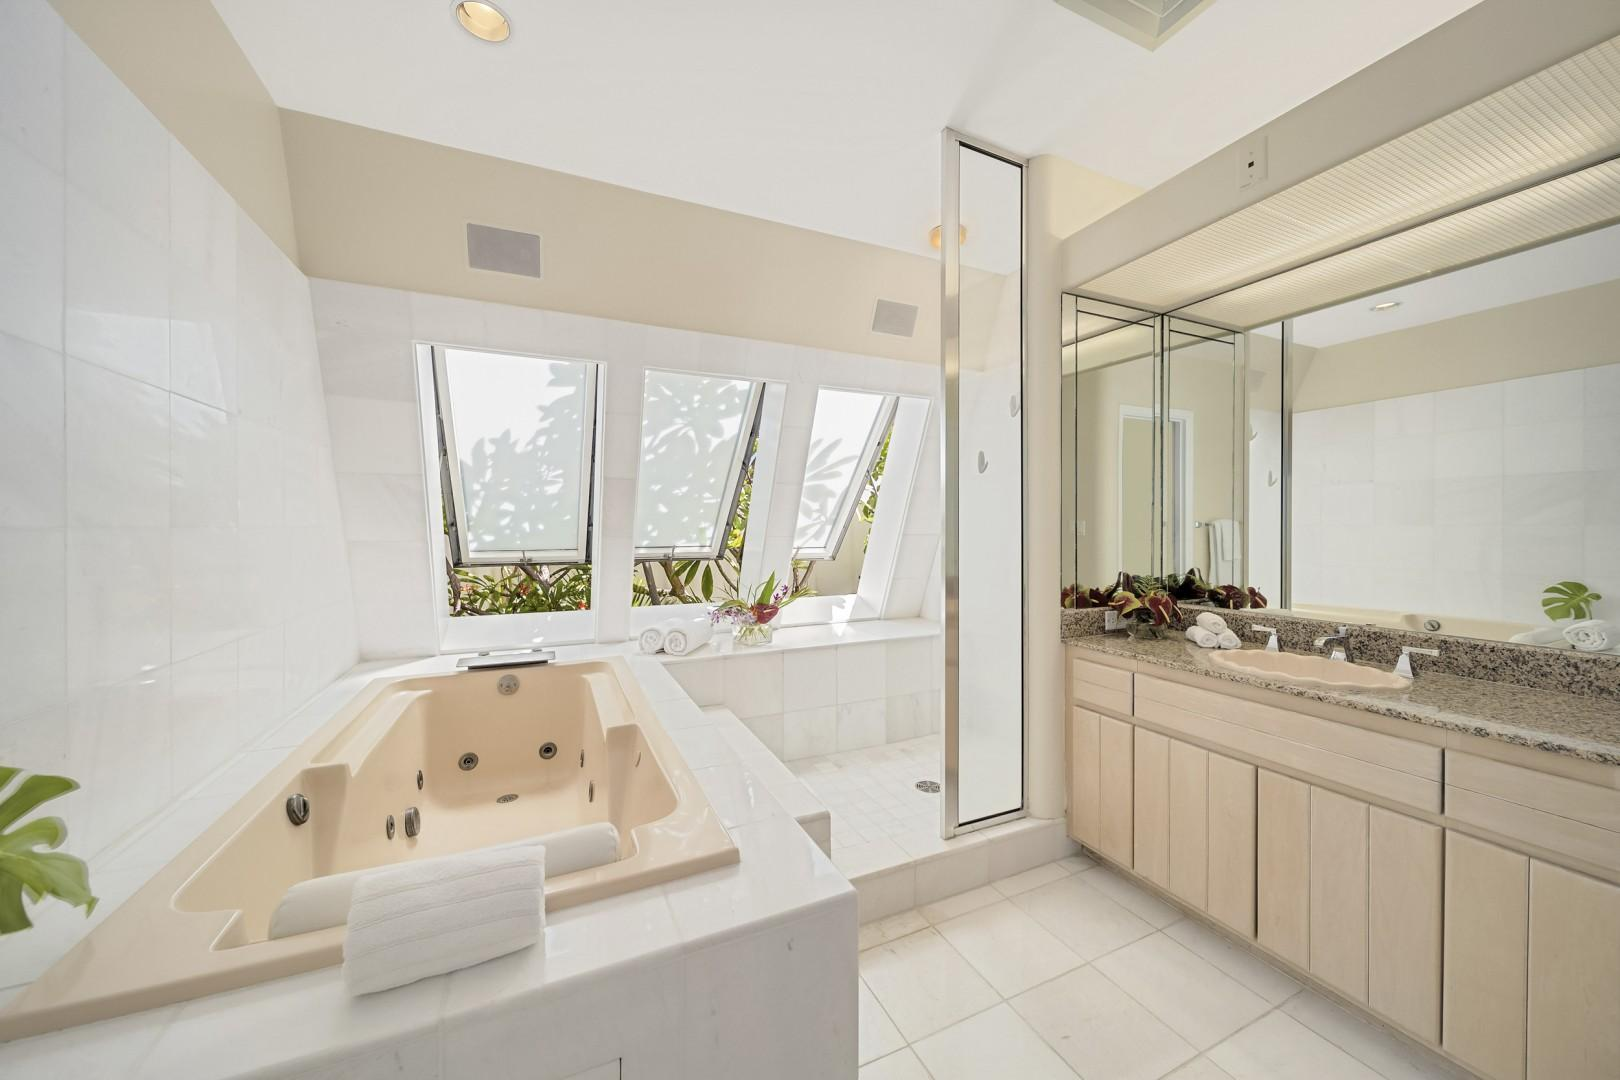 Master bathroom with jetted tub and walk-in shower.